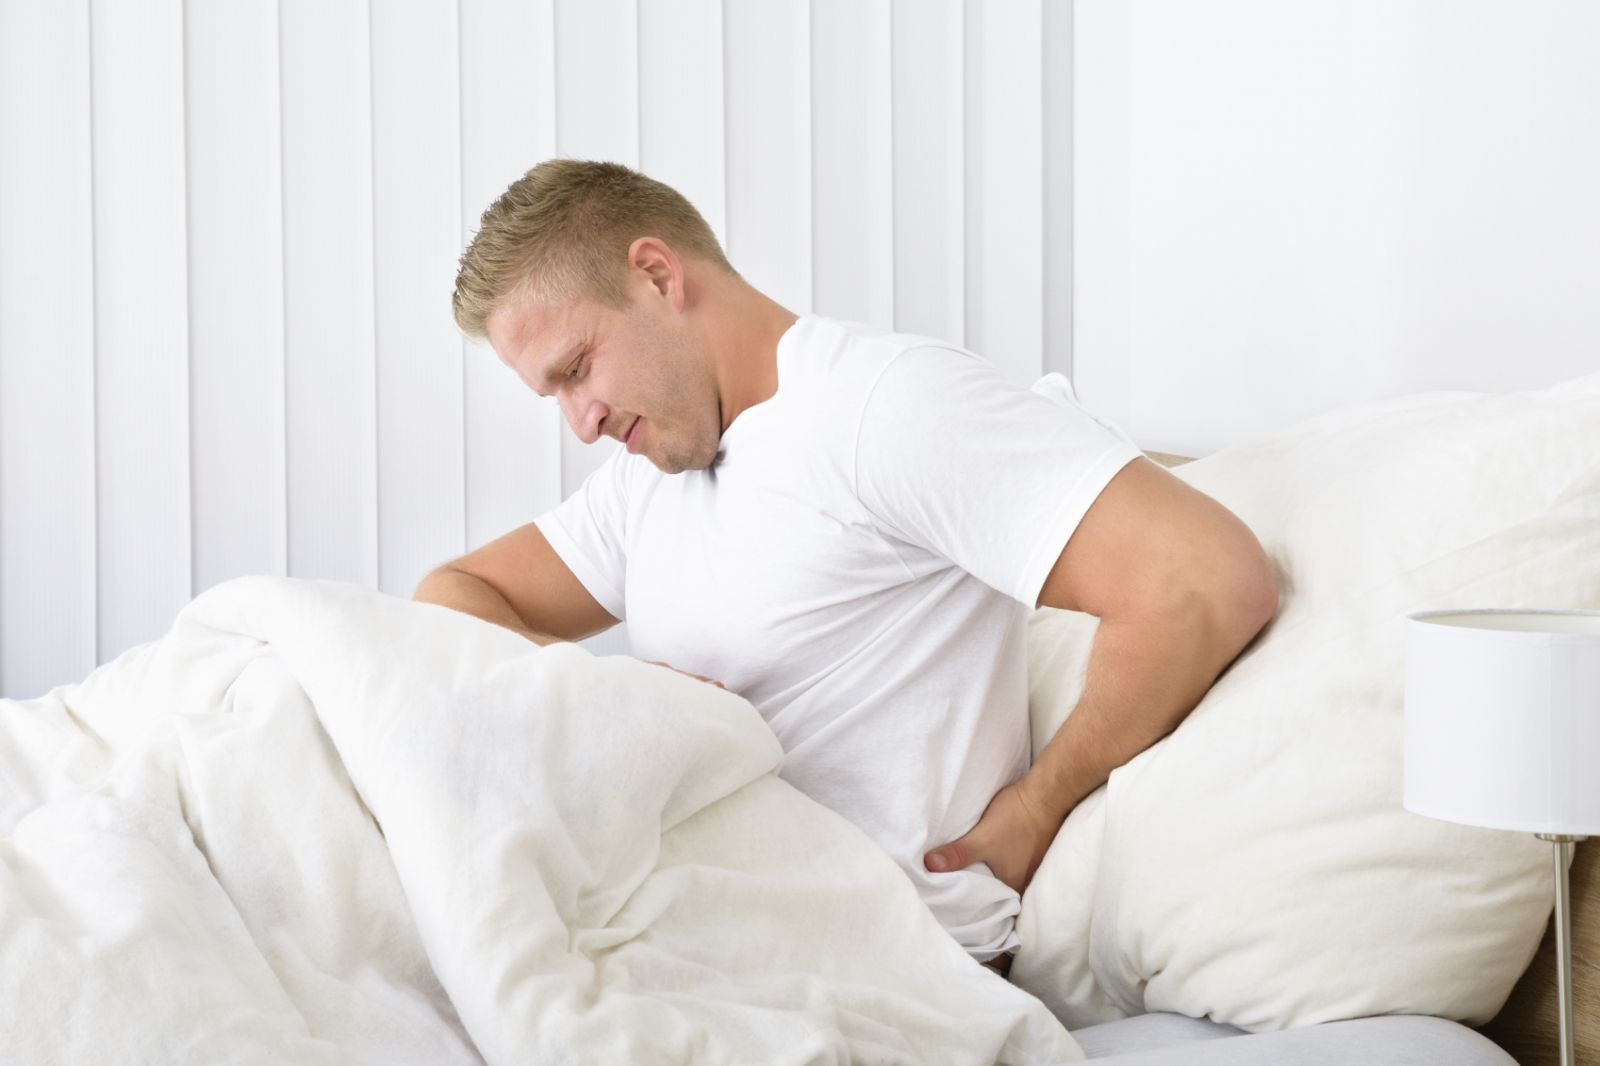 hb-backpain-0216207265058114